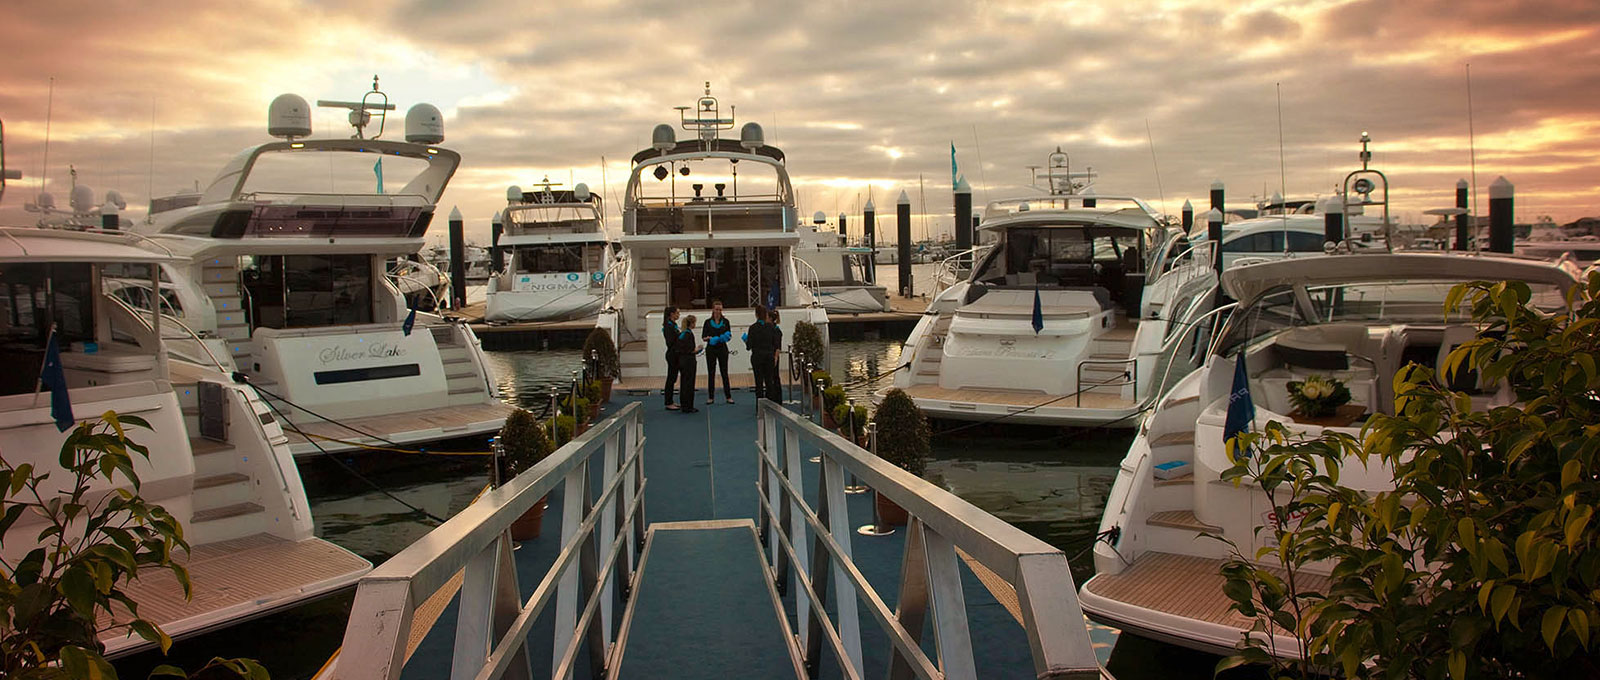 Boutique Boats Website Luxury Boats Yachts For Sale In Perth